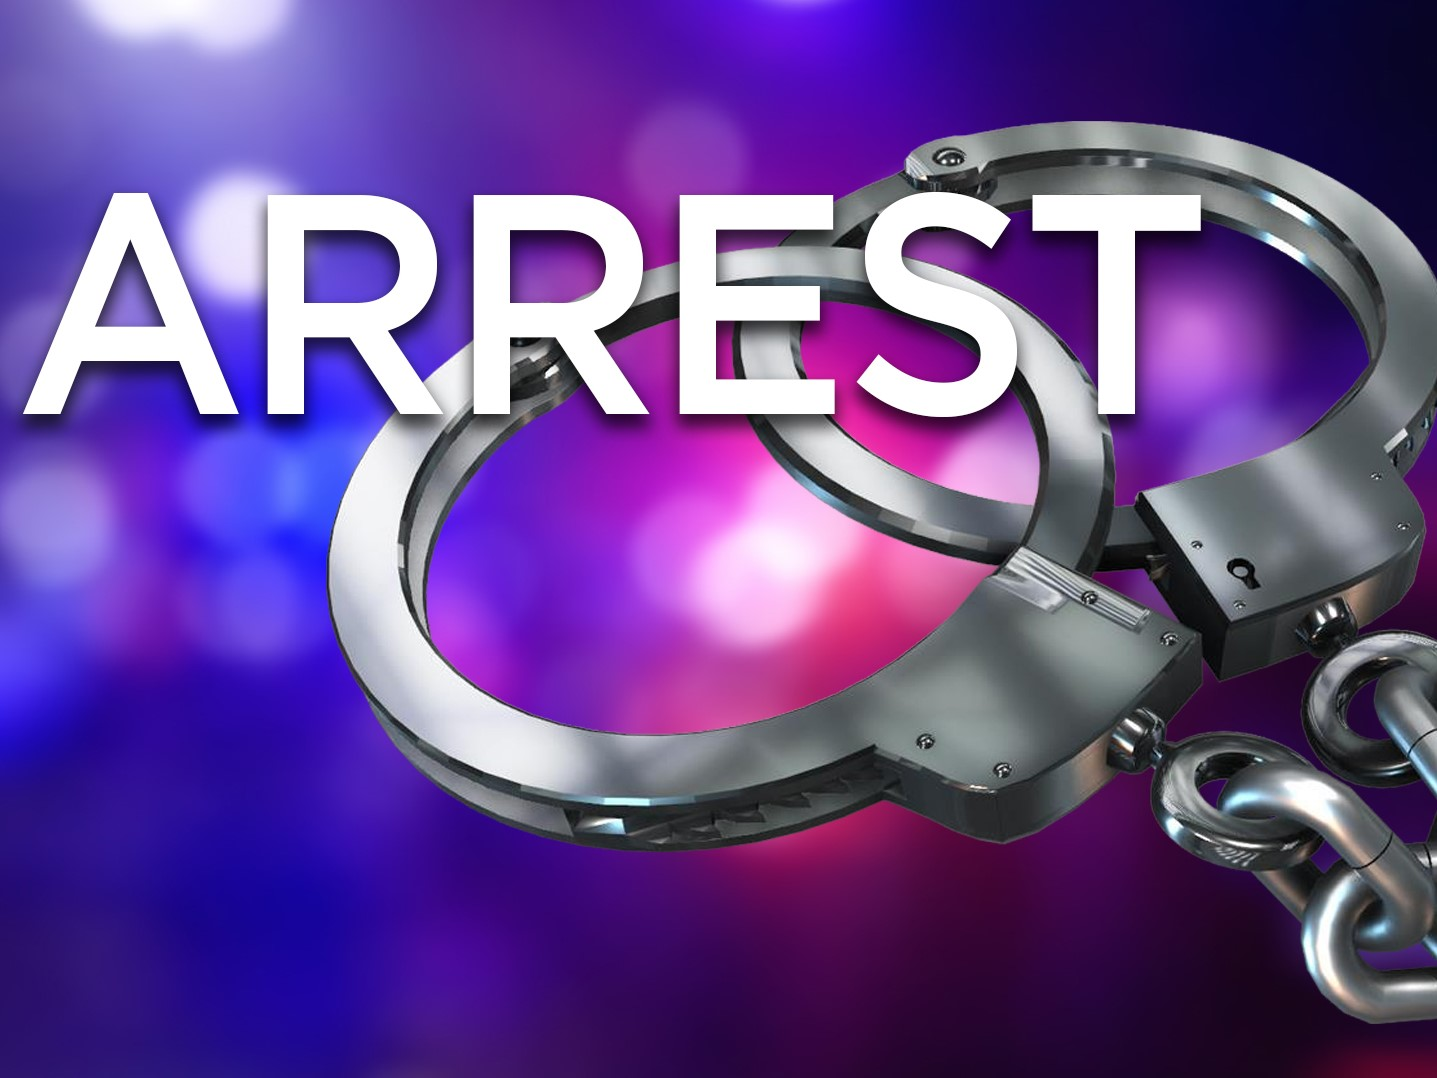 Form 3 student and mother arrested over alleged murder of a lover, police say.